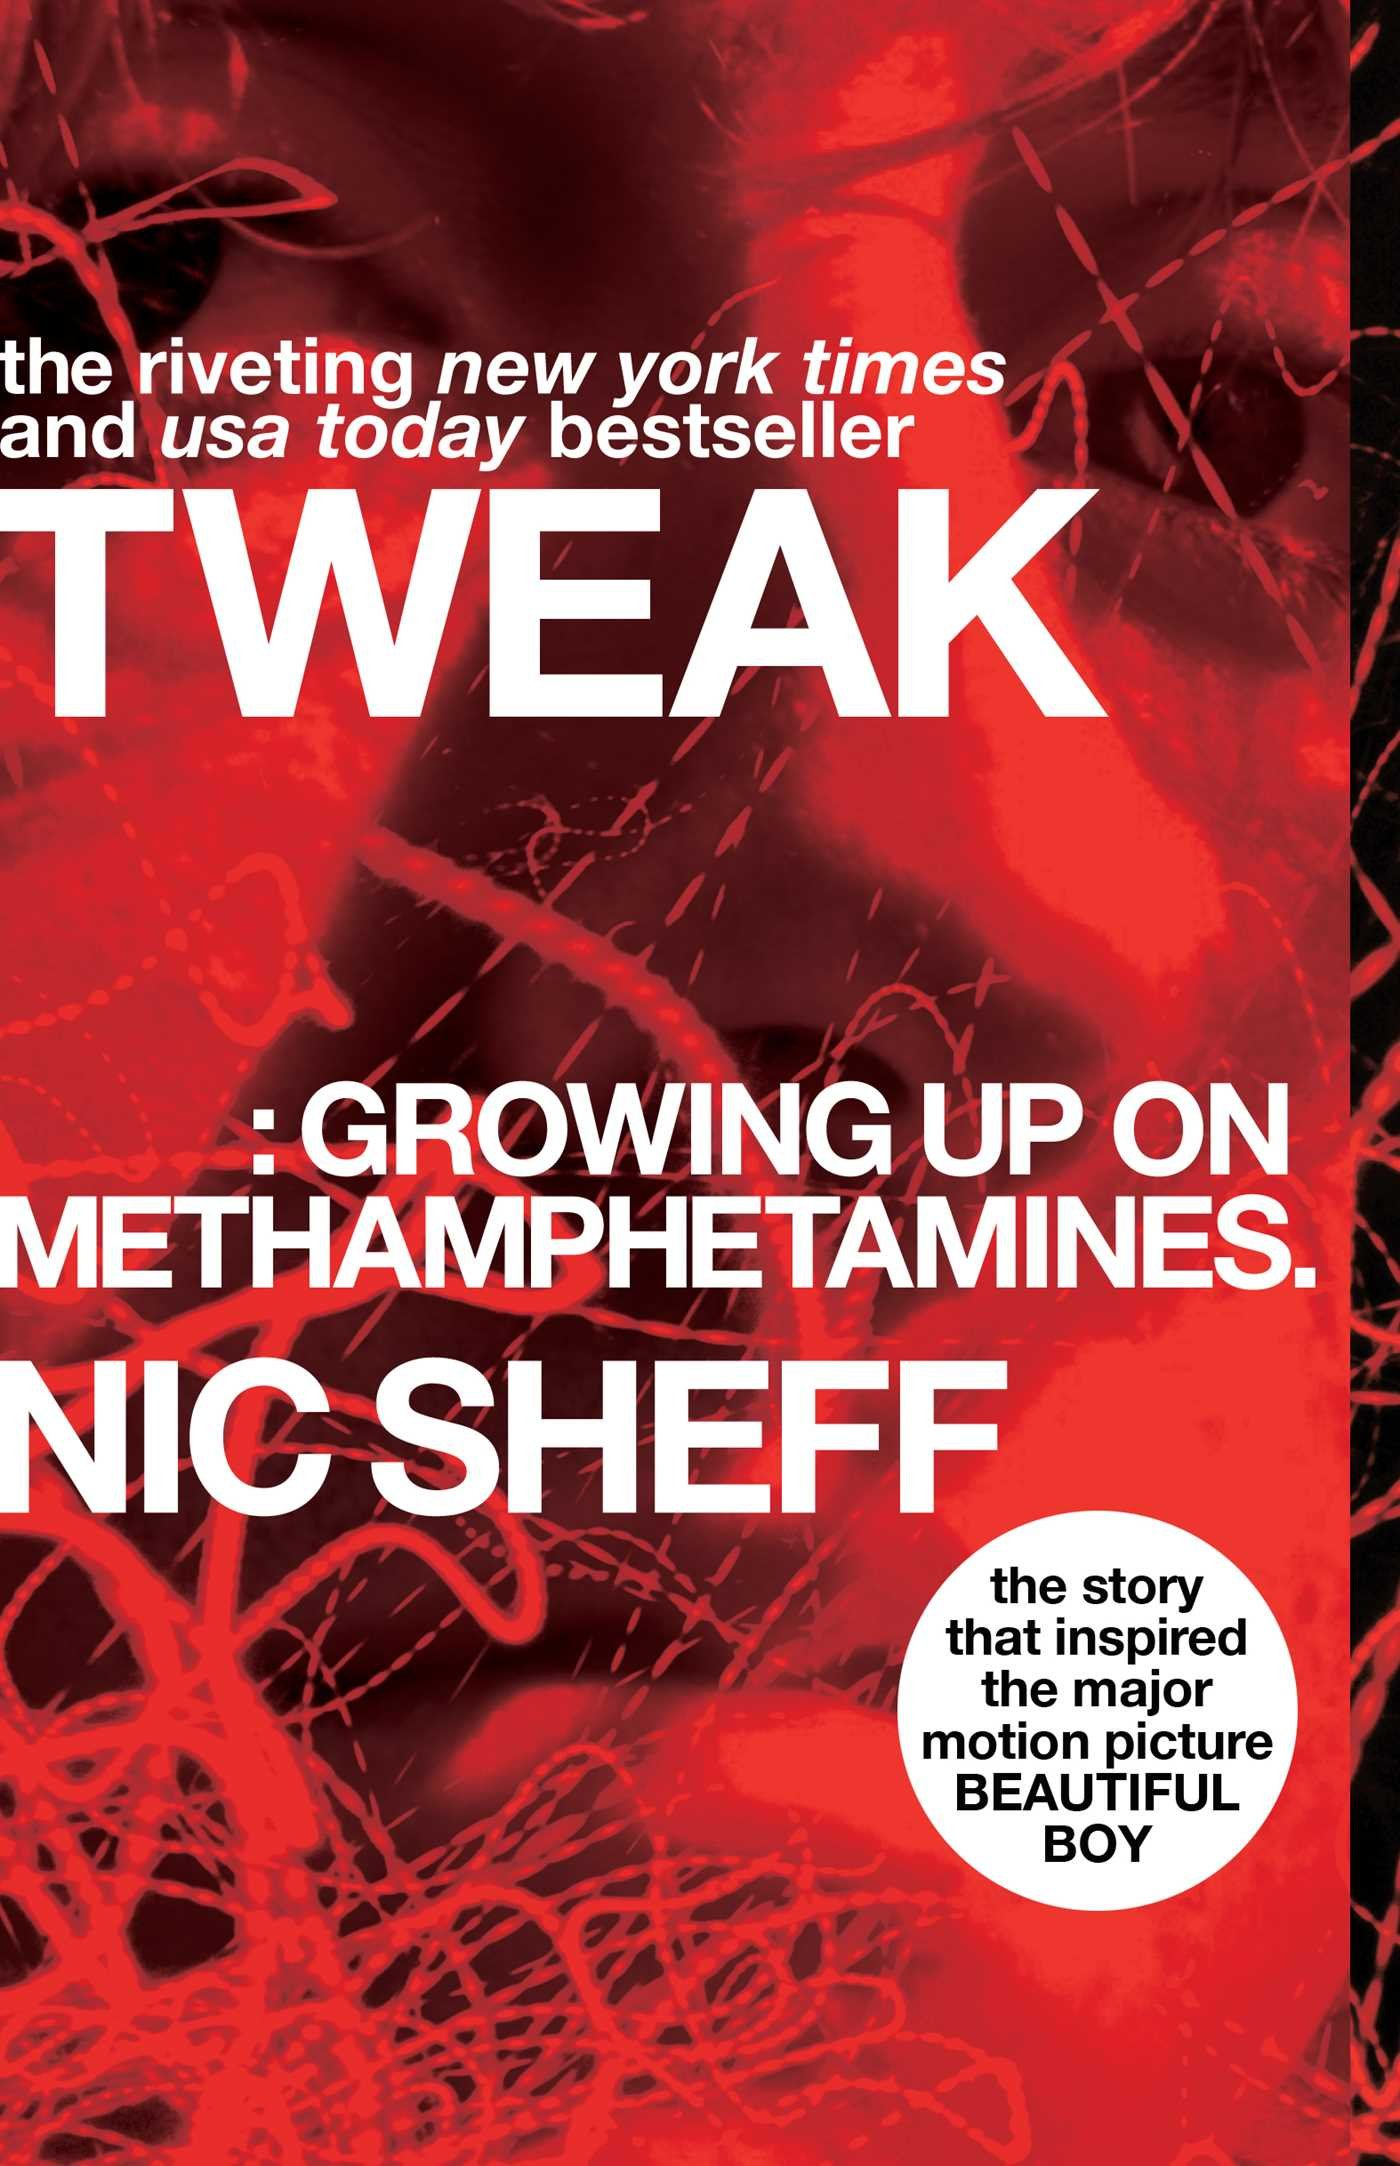 Tweak: Growing Up on Methamphetamines: Amazon.es: Nic Sheff: Libros en idiomas extranjeros